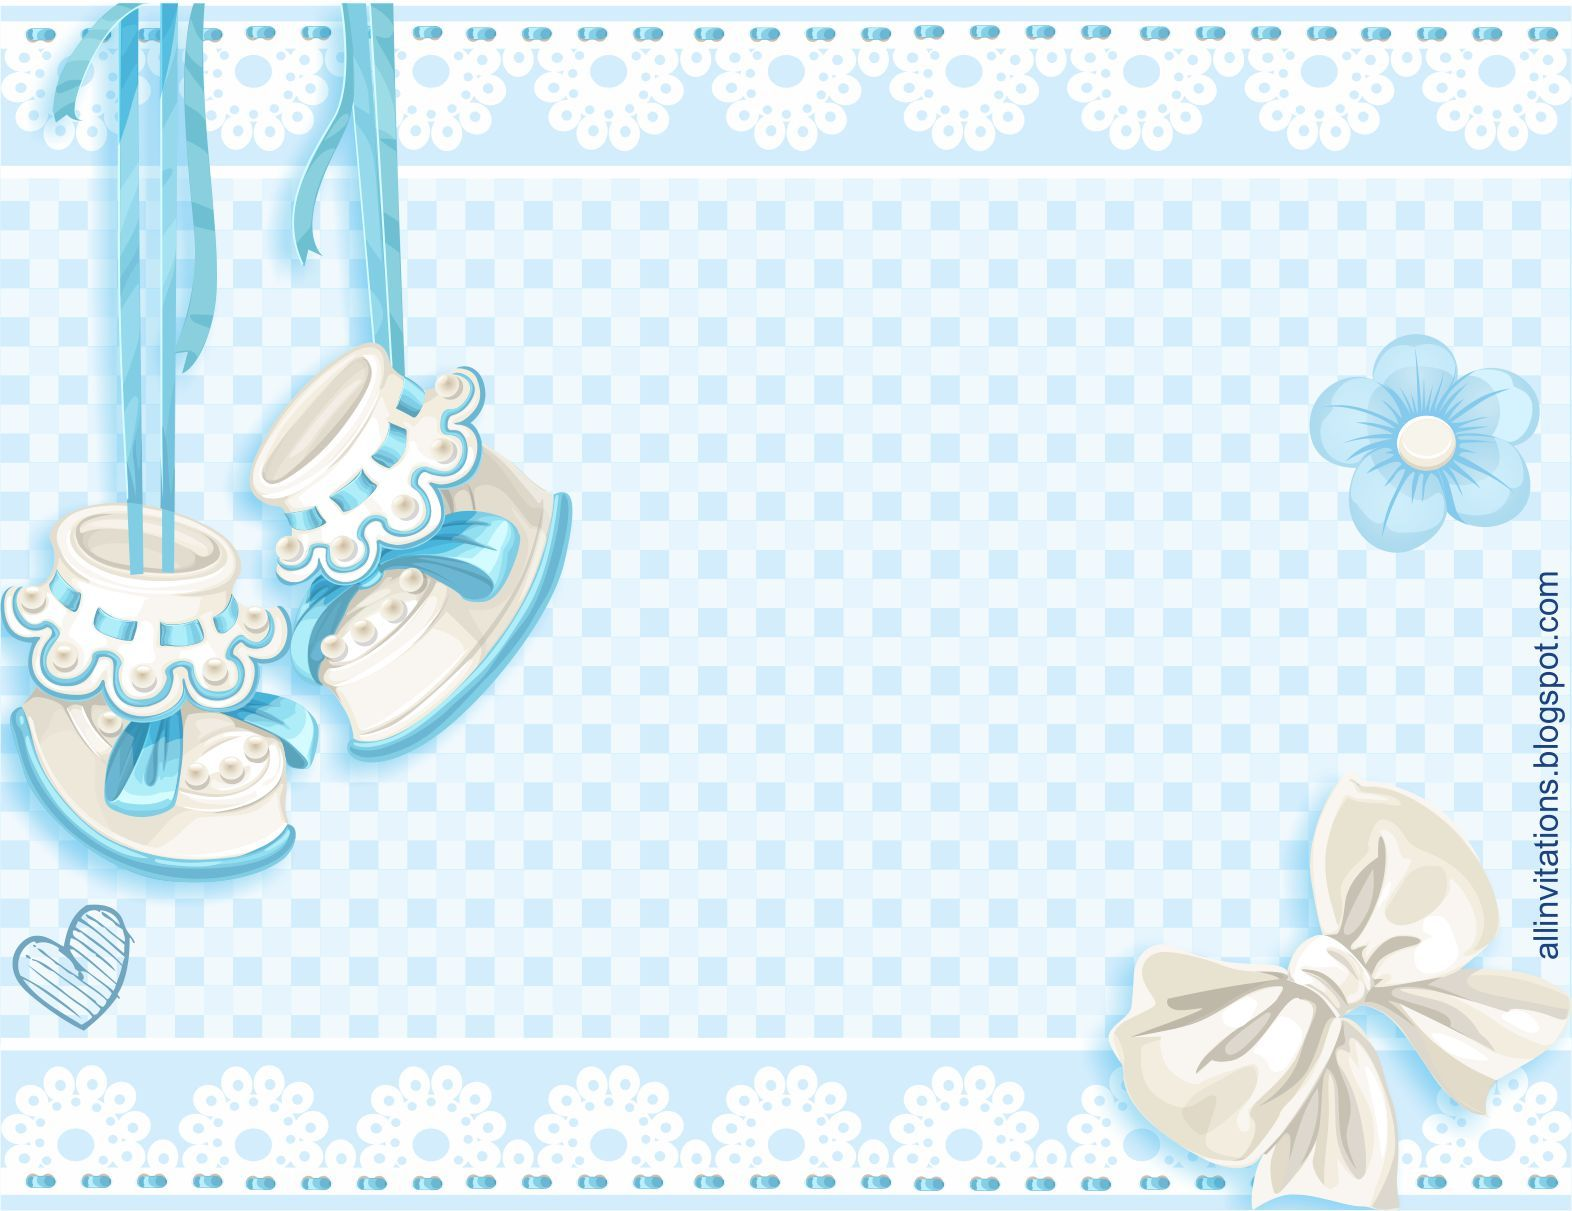 Plantilla invitacion baby shower zapatitos niño | nombres ...